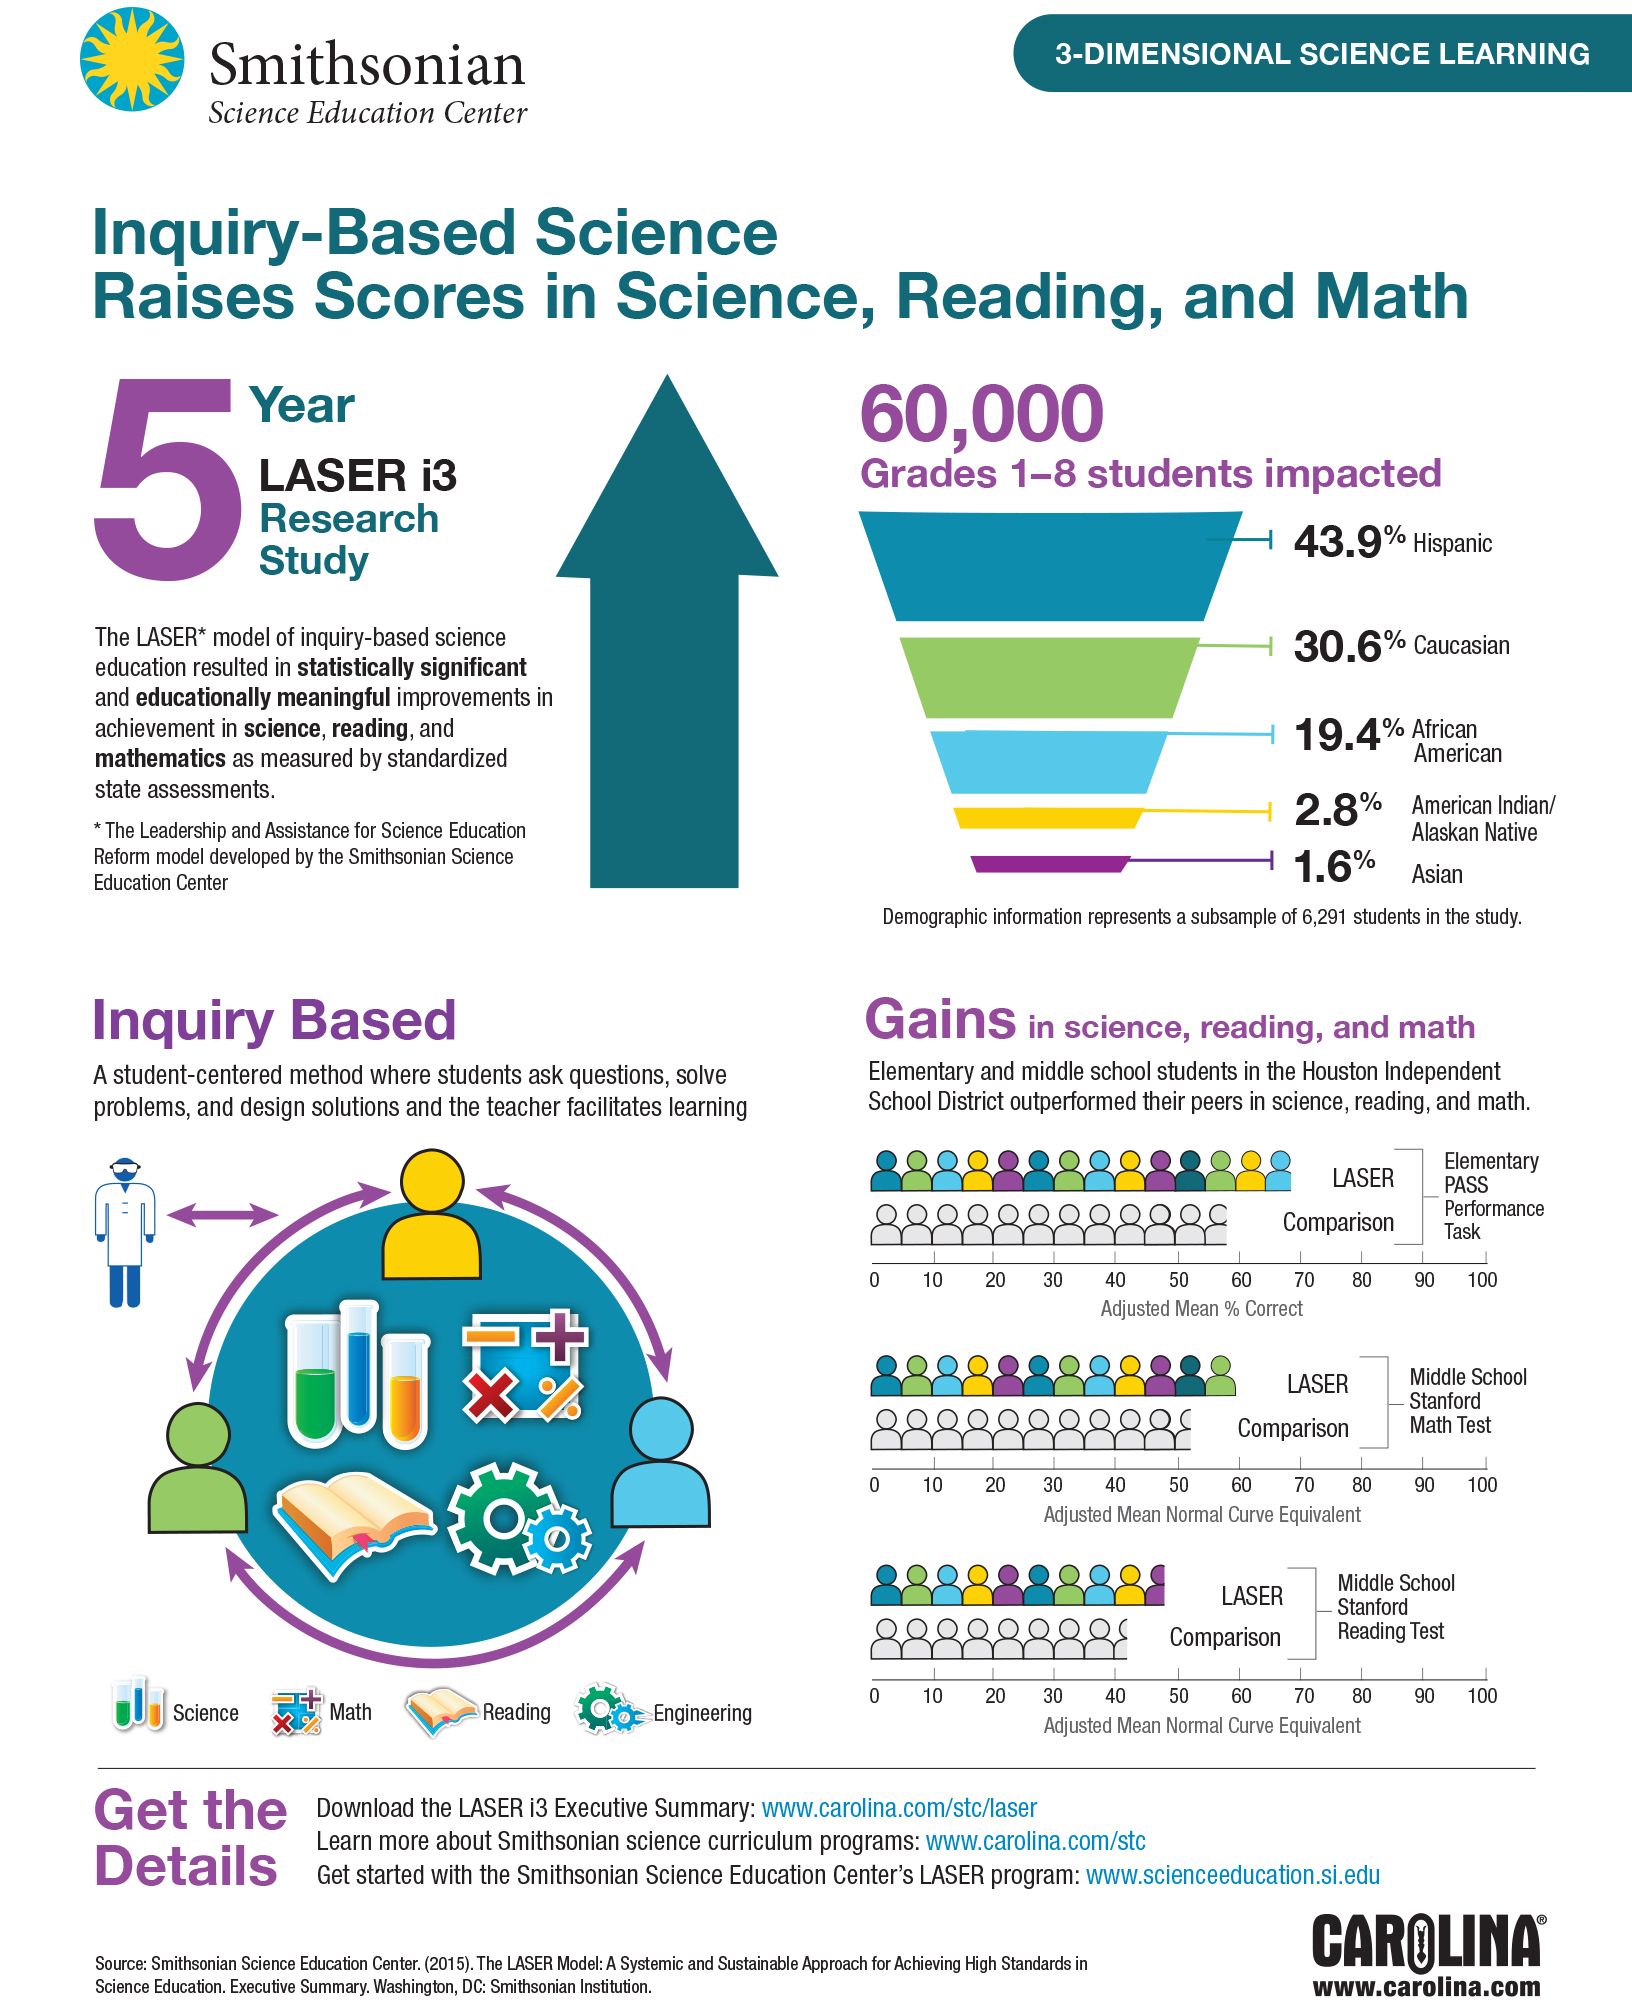 Inquiry-Based Science Raises Scores in Science, Reading, and Math